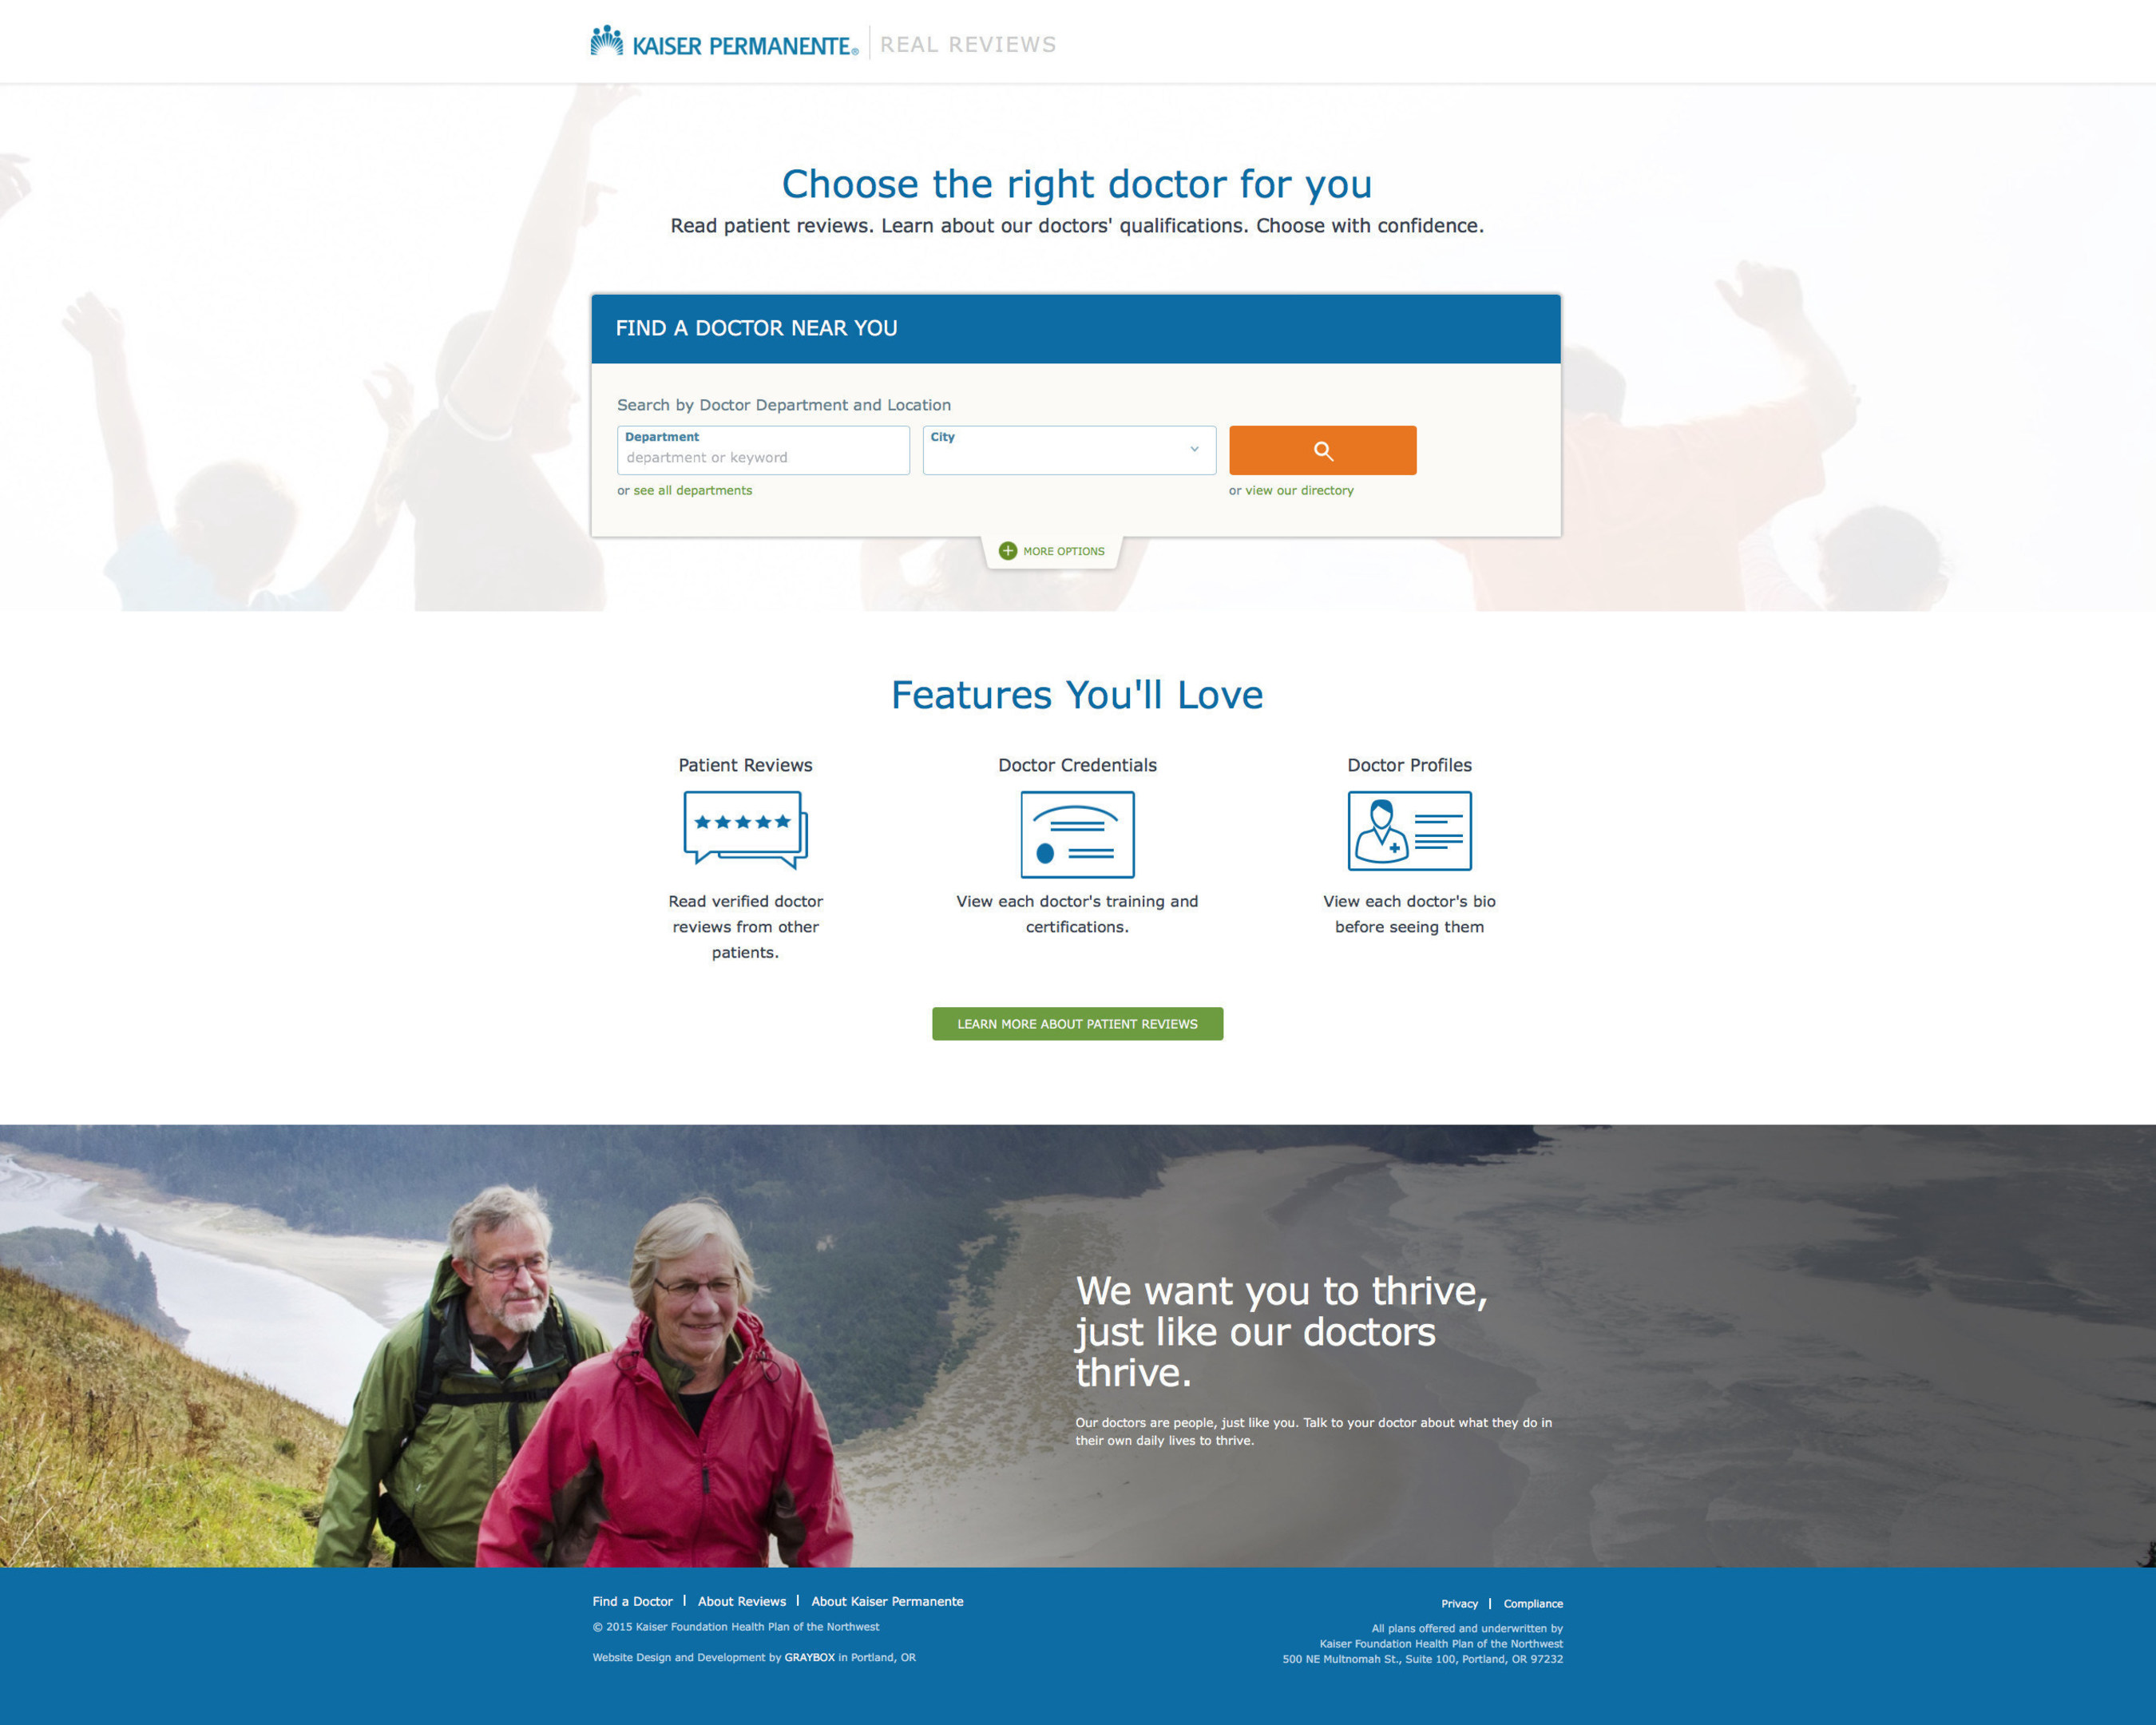 Kaiser Permanente Northwest Launches 'Real Reviews' Online